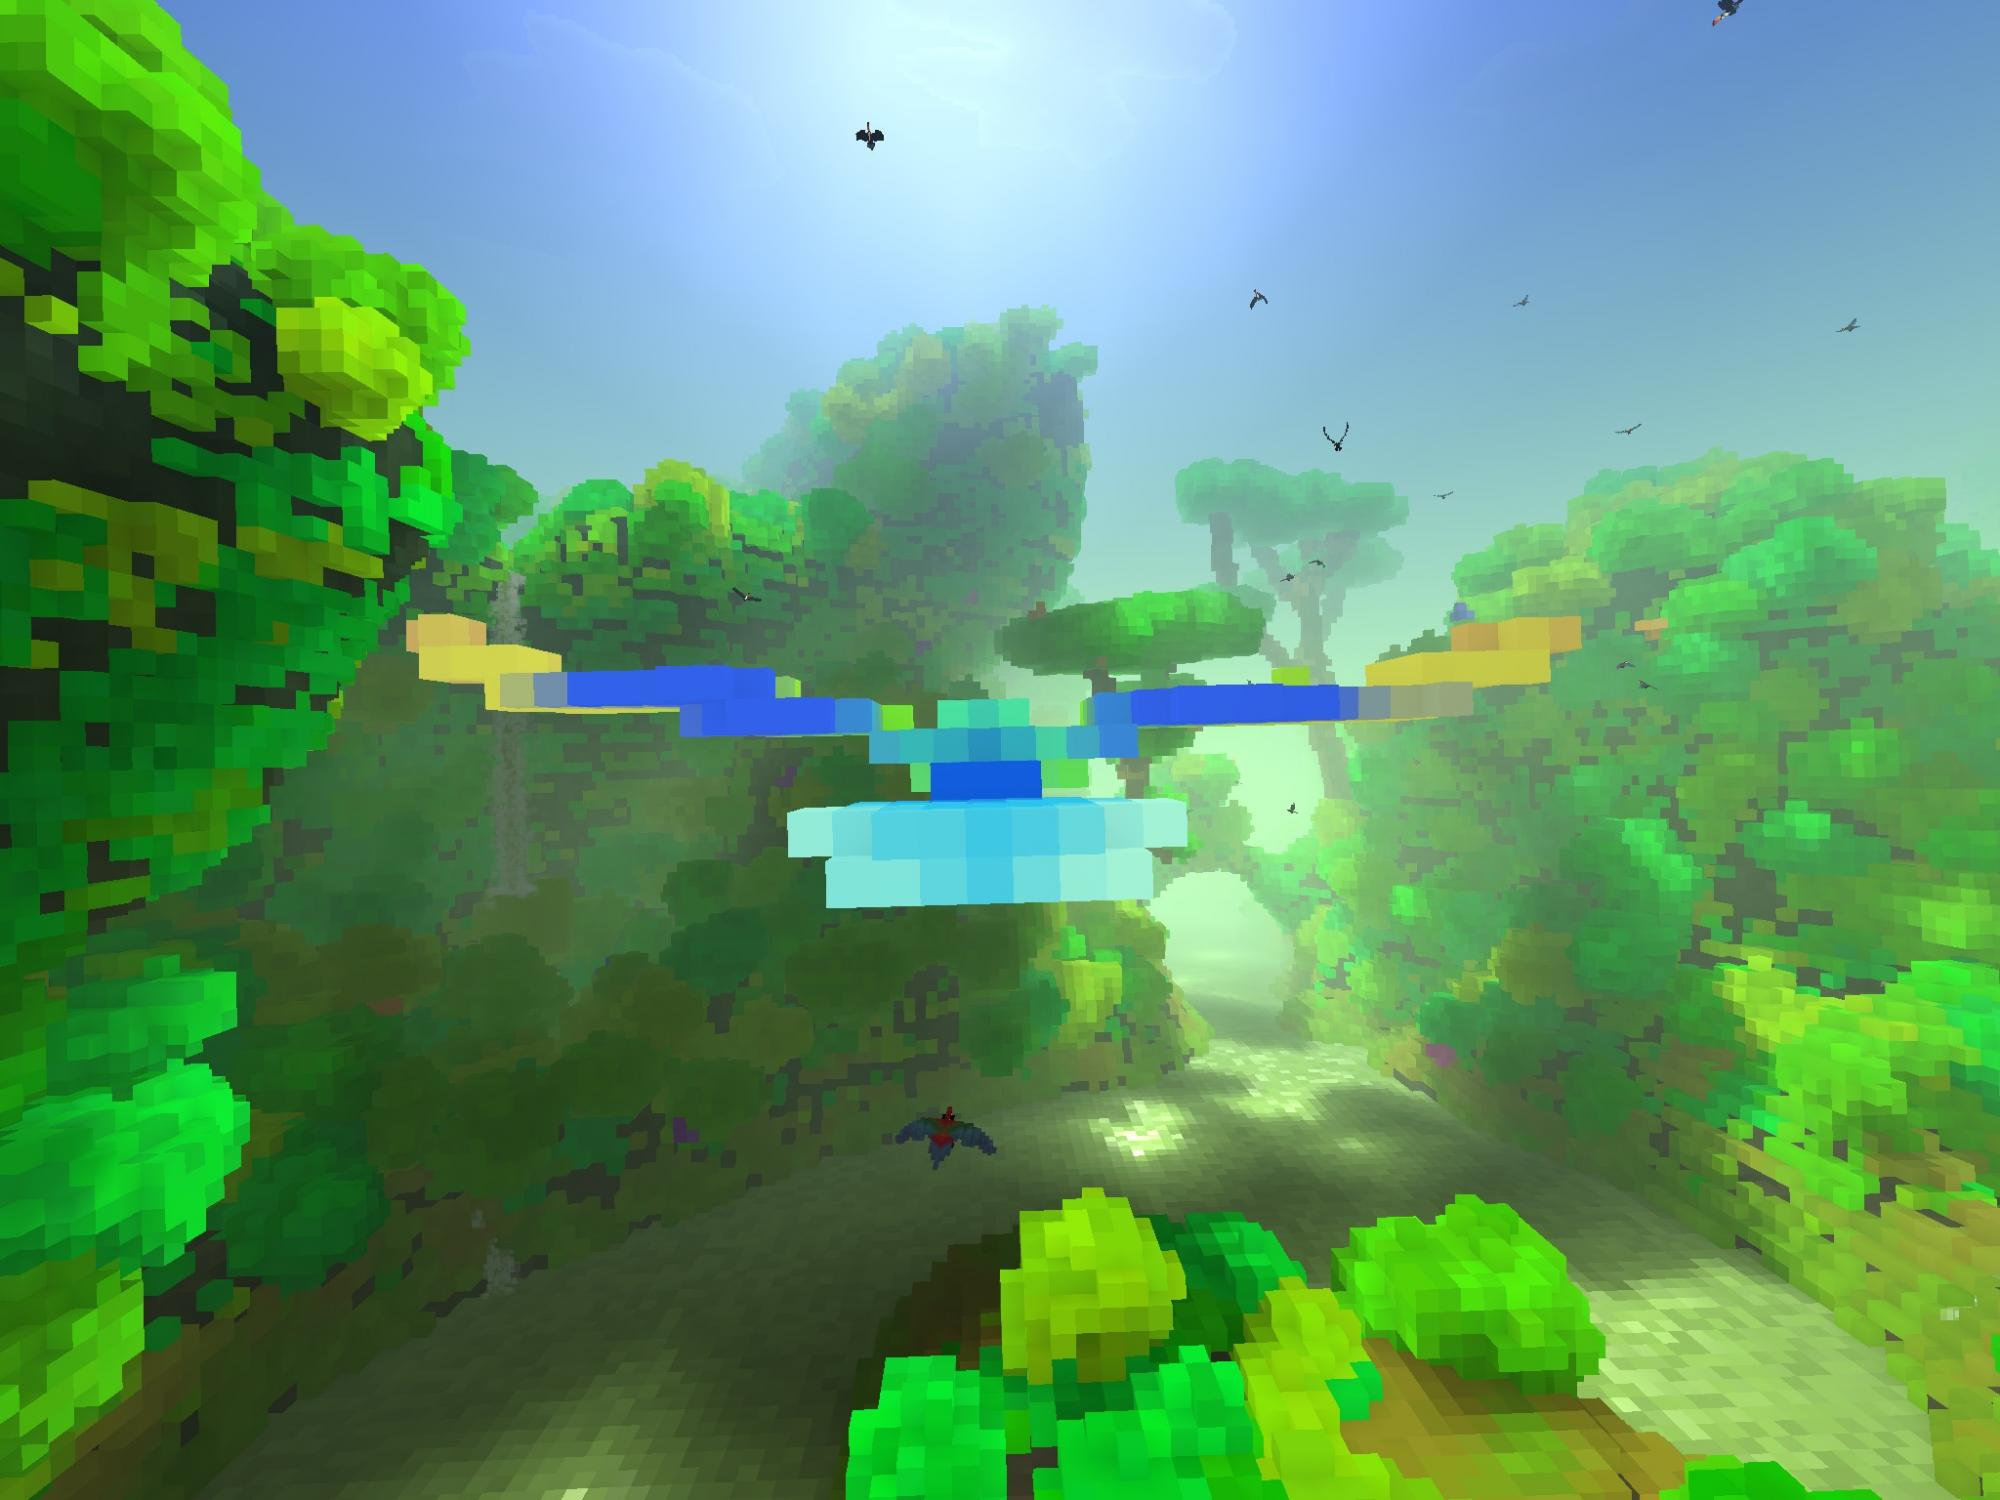 Beautiful zen-like flying game Fugl shows off its oasis and jungle in new video